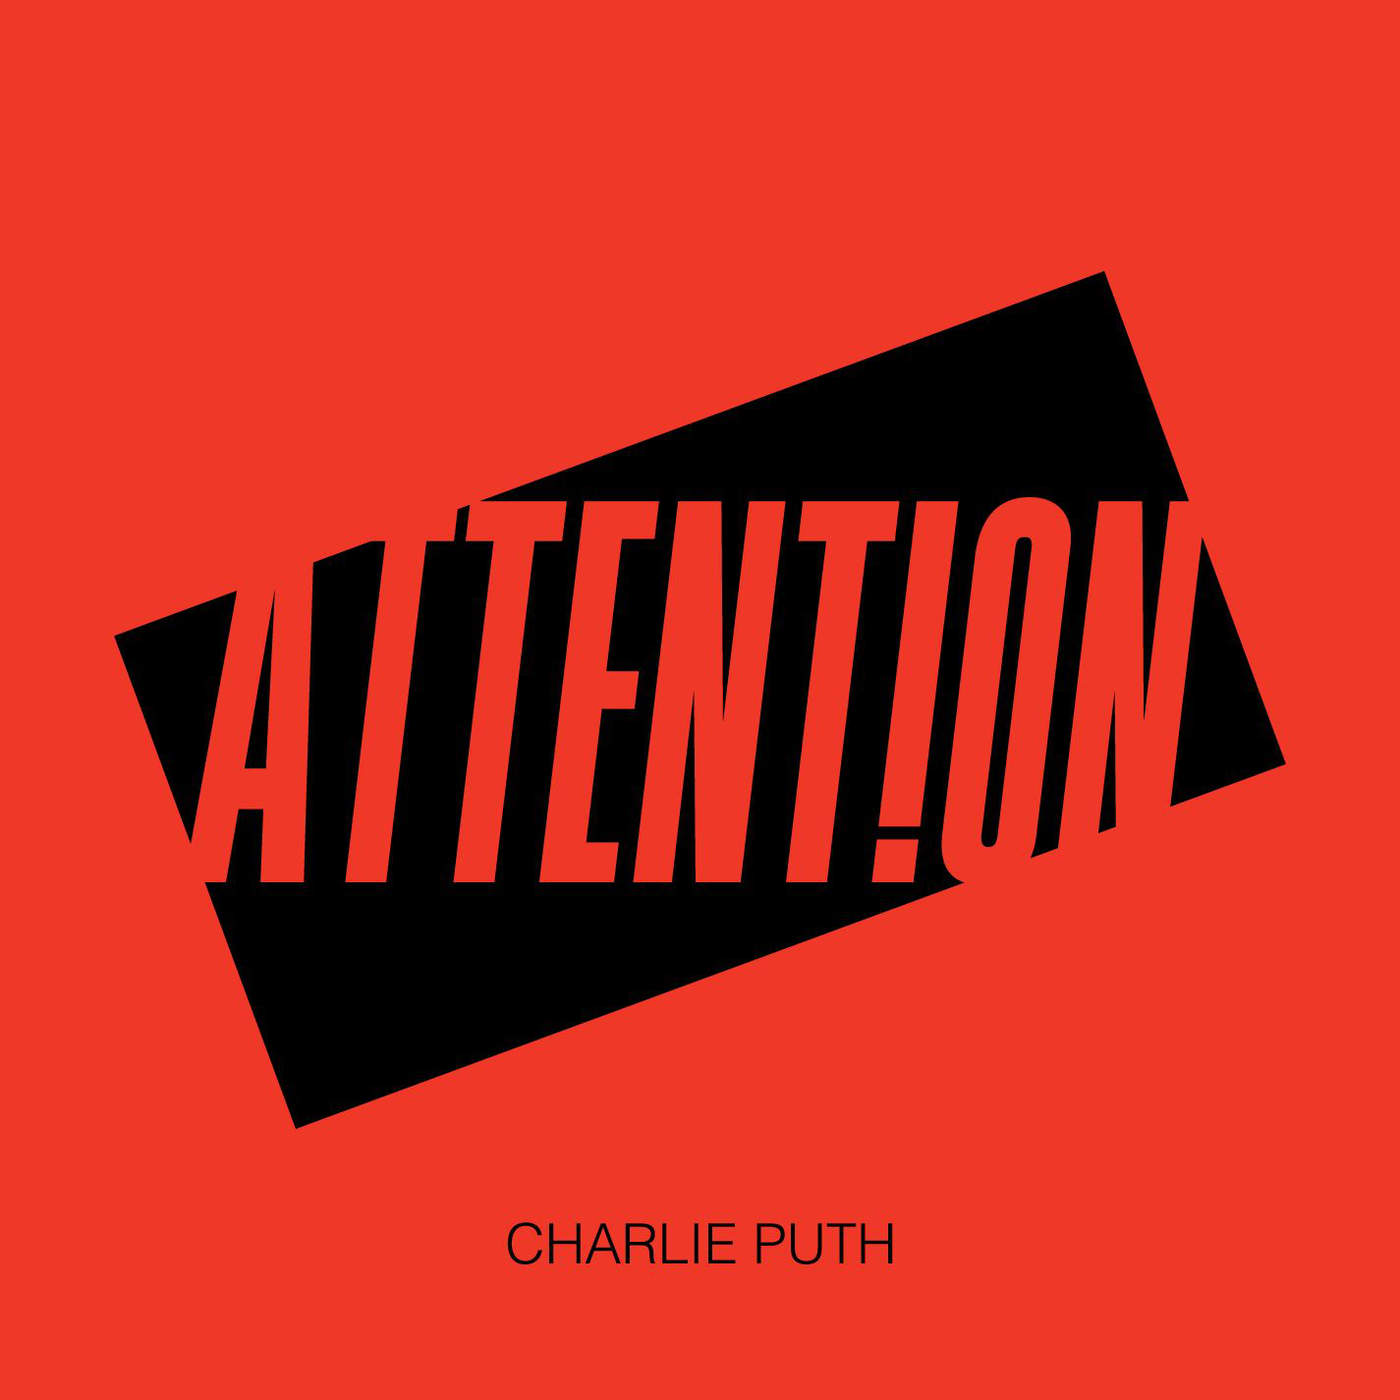 Charlie Puth - Attention - Single [iTunes Plus AAC M4A